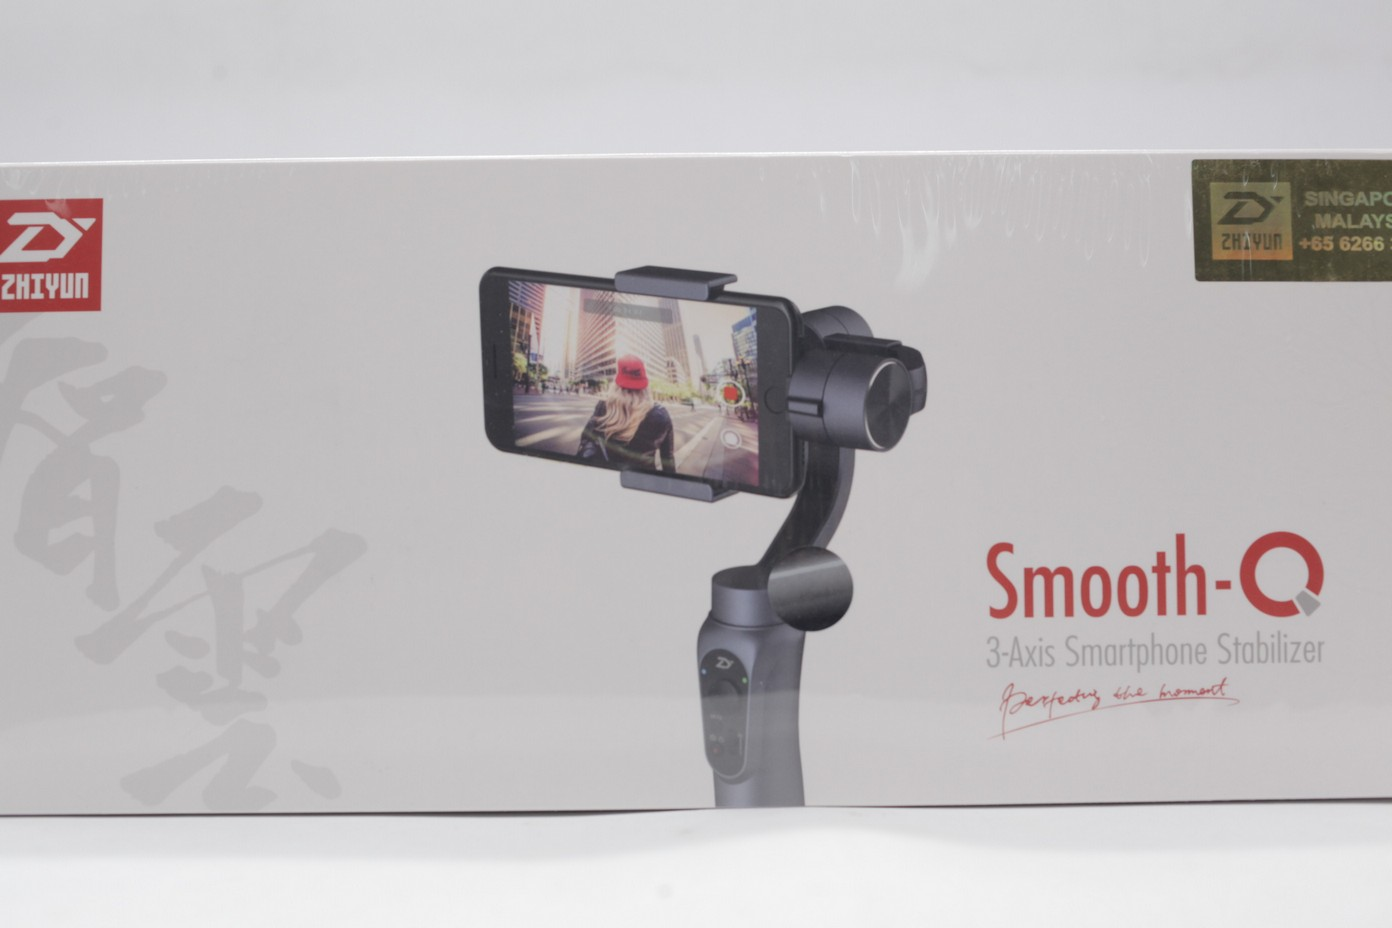 Used Zhiyun Smooth Q 3 Axis Handheld Gimbal Stabilizer Tech Smartphone